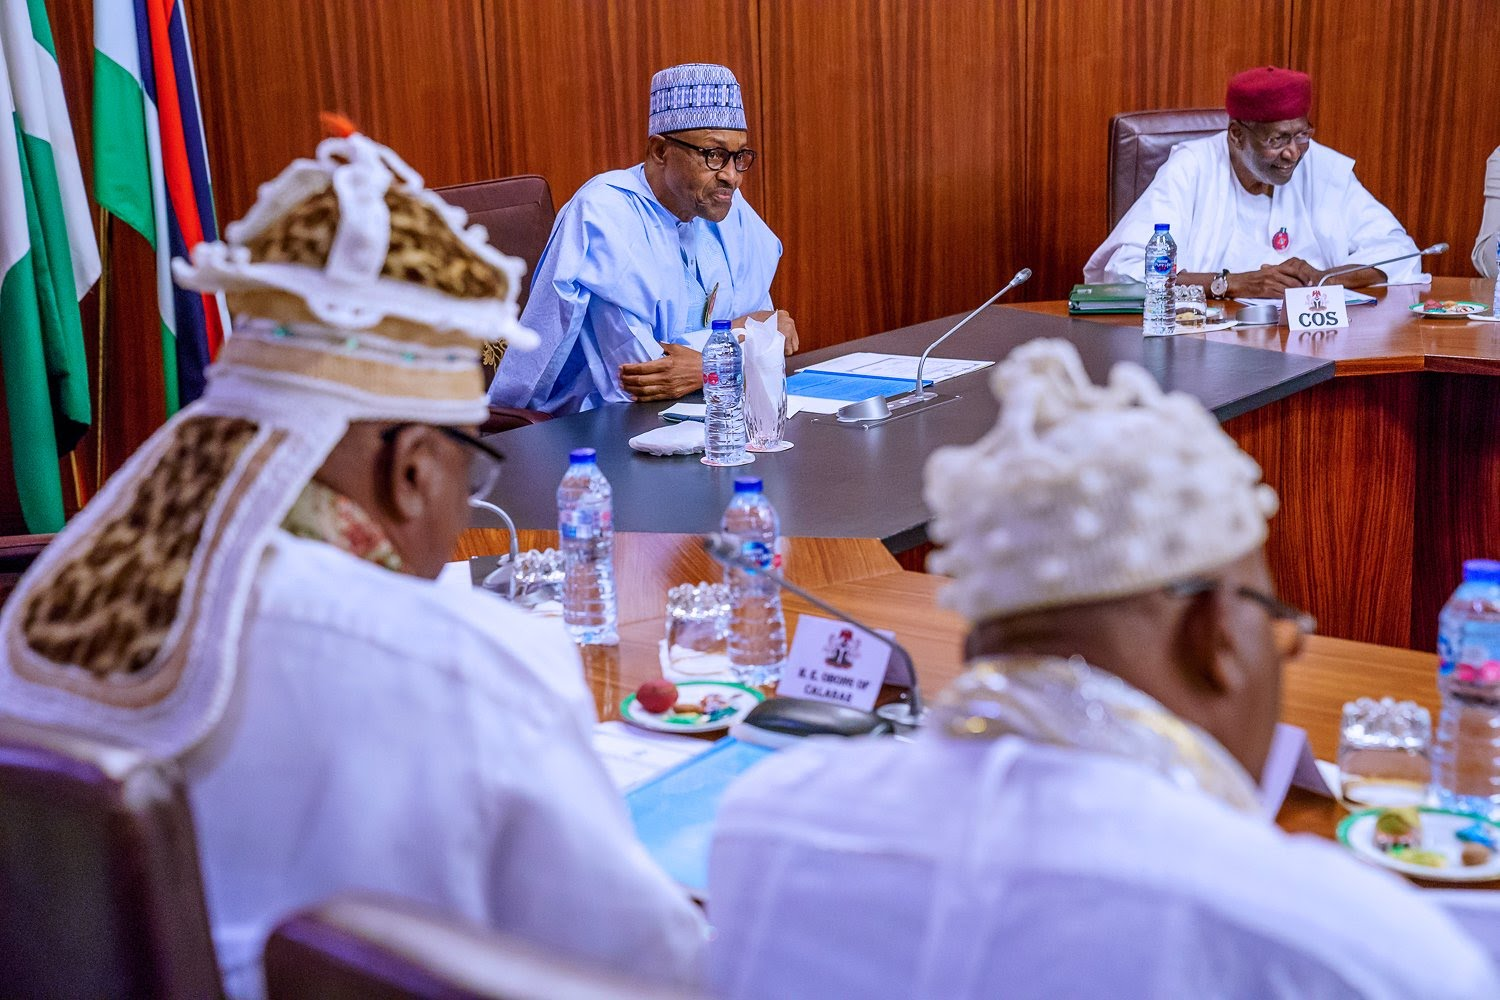 President Muhammadu Buhari in a meeting at the villa (Presidency)